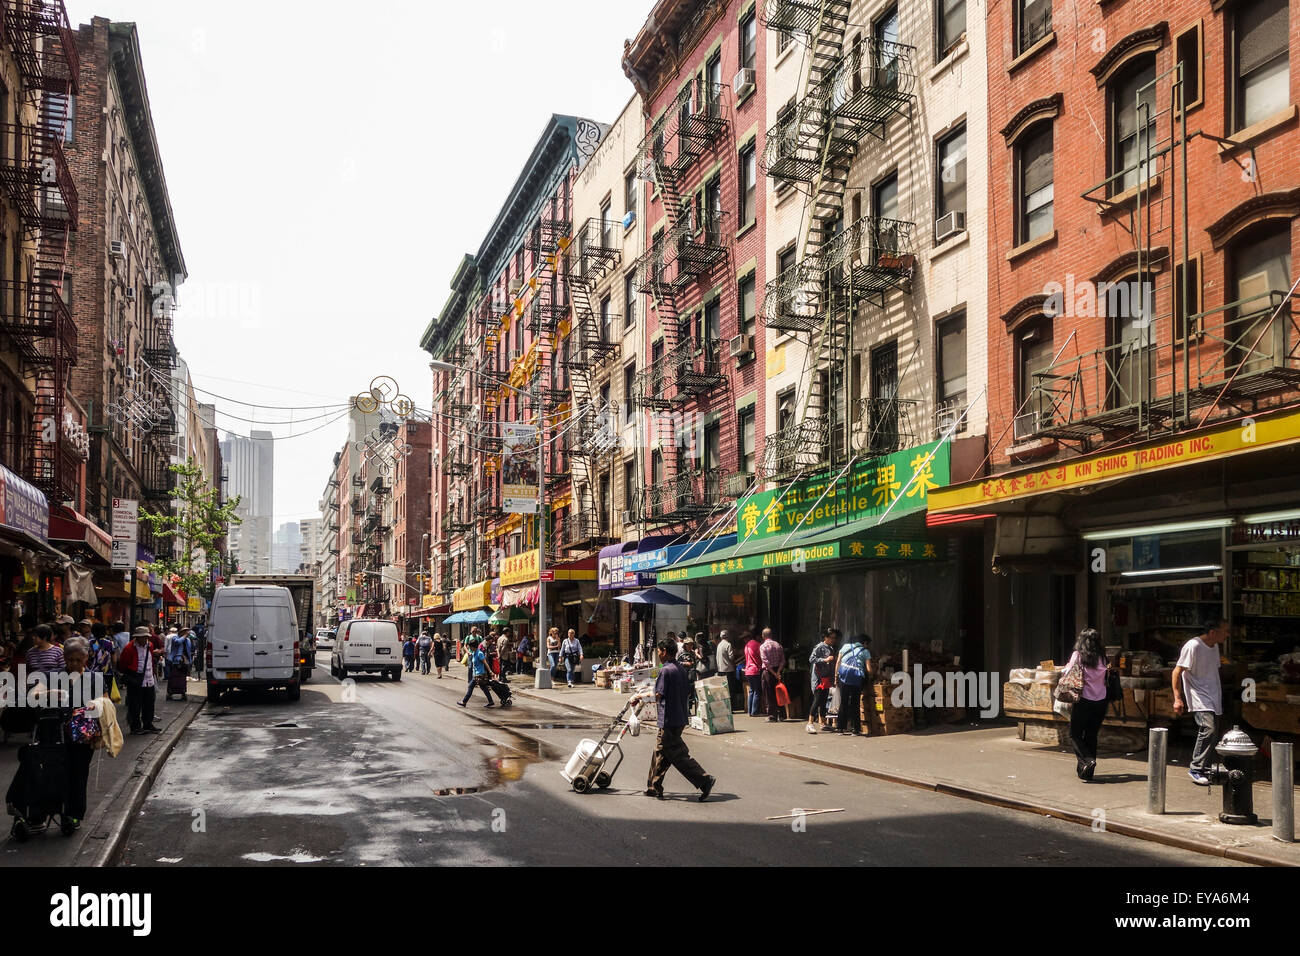 Street view of Chinatown, Mott street, Manhattan, New York City, USA. - Stock Image